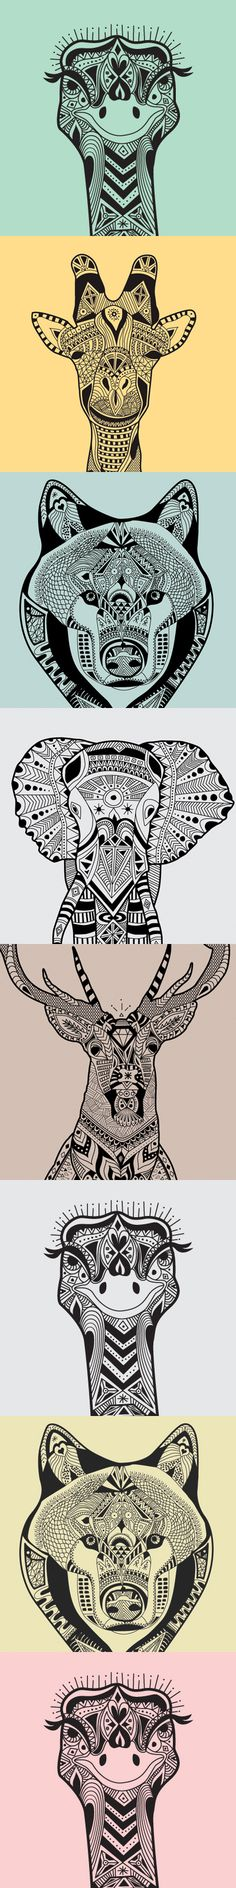 wild animals zentangle patterns - Zentangle - More doodle ideas - Zentangle…